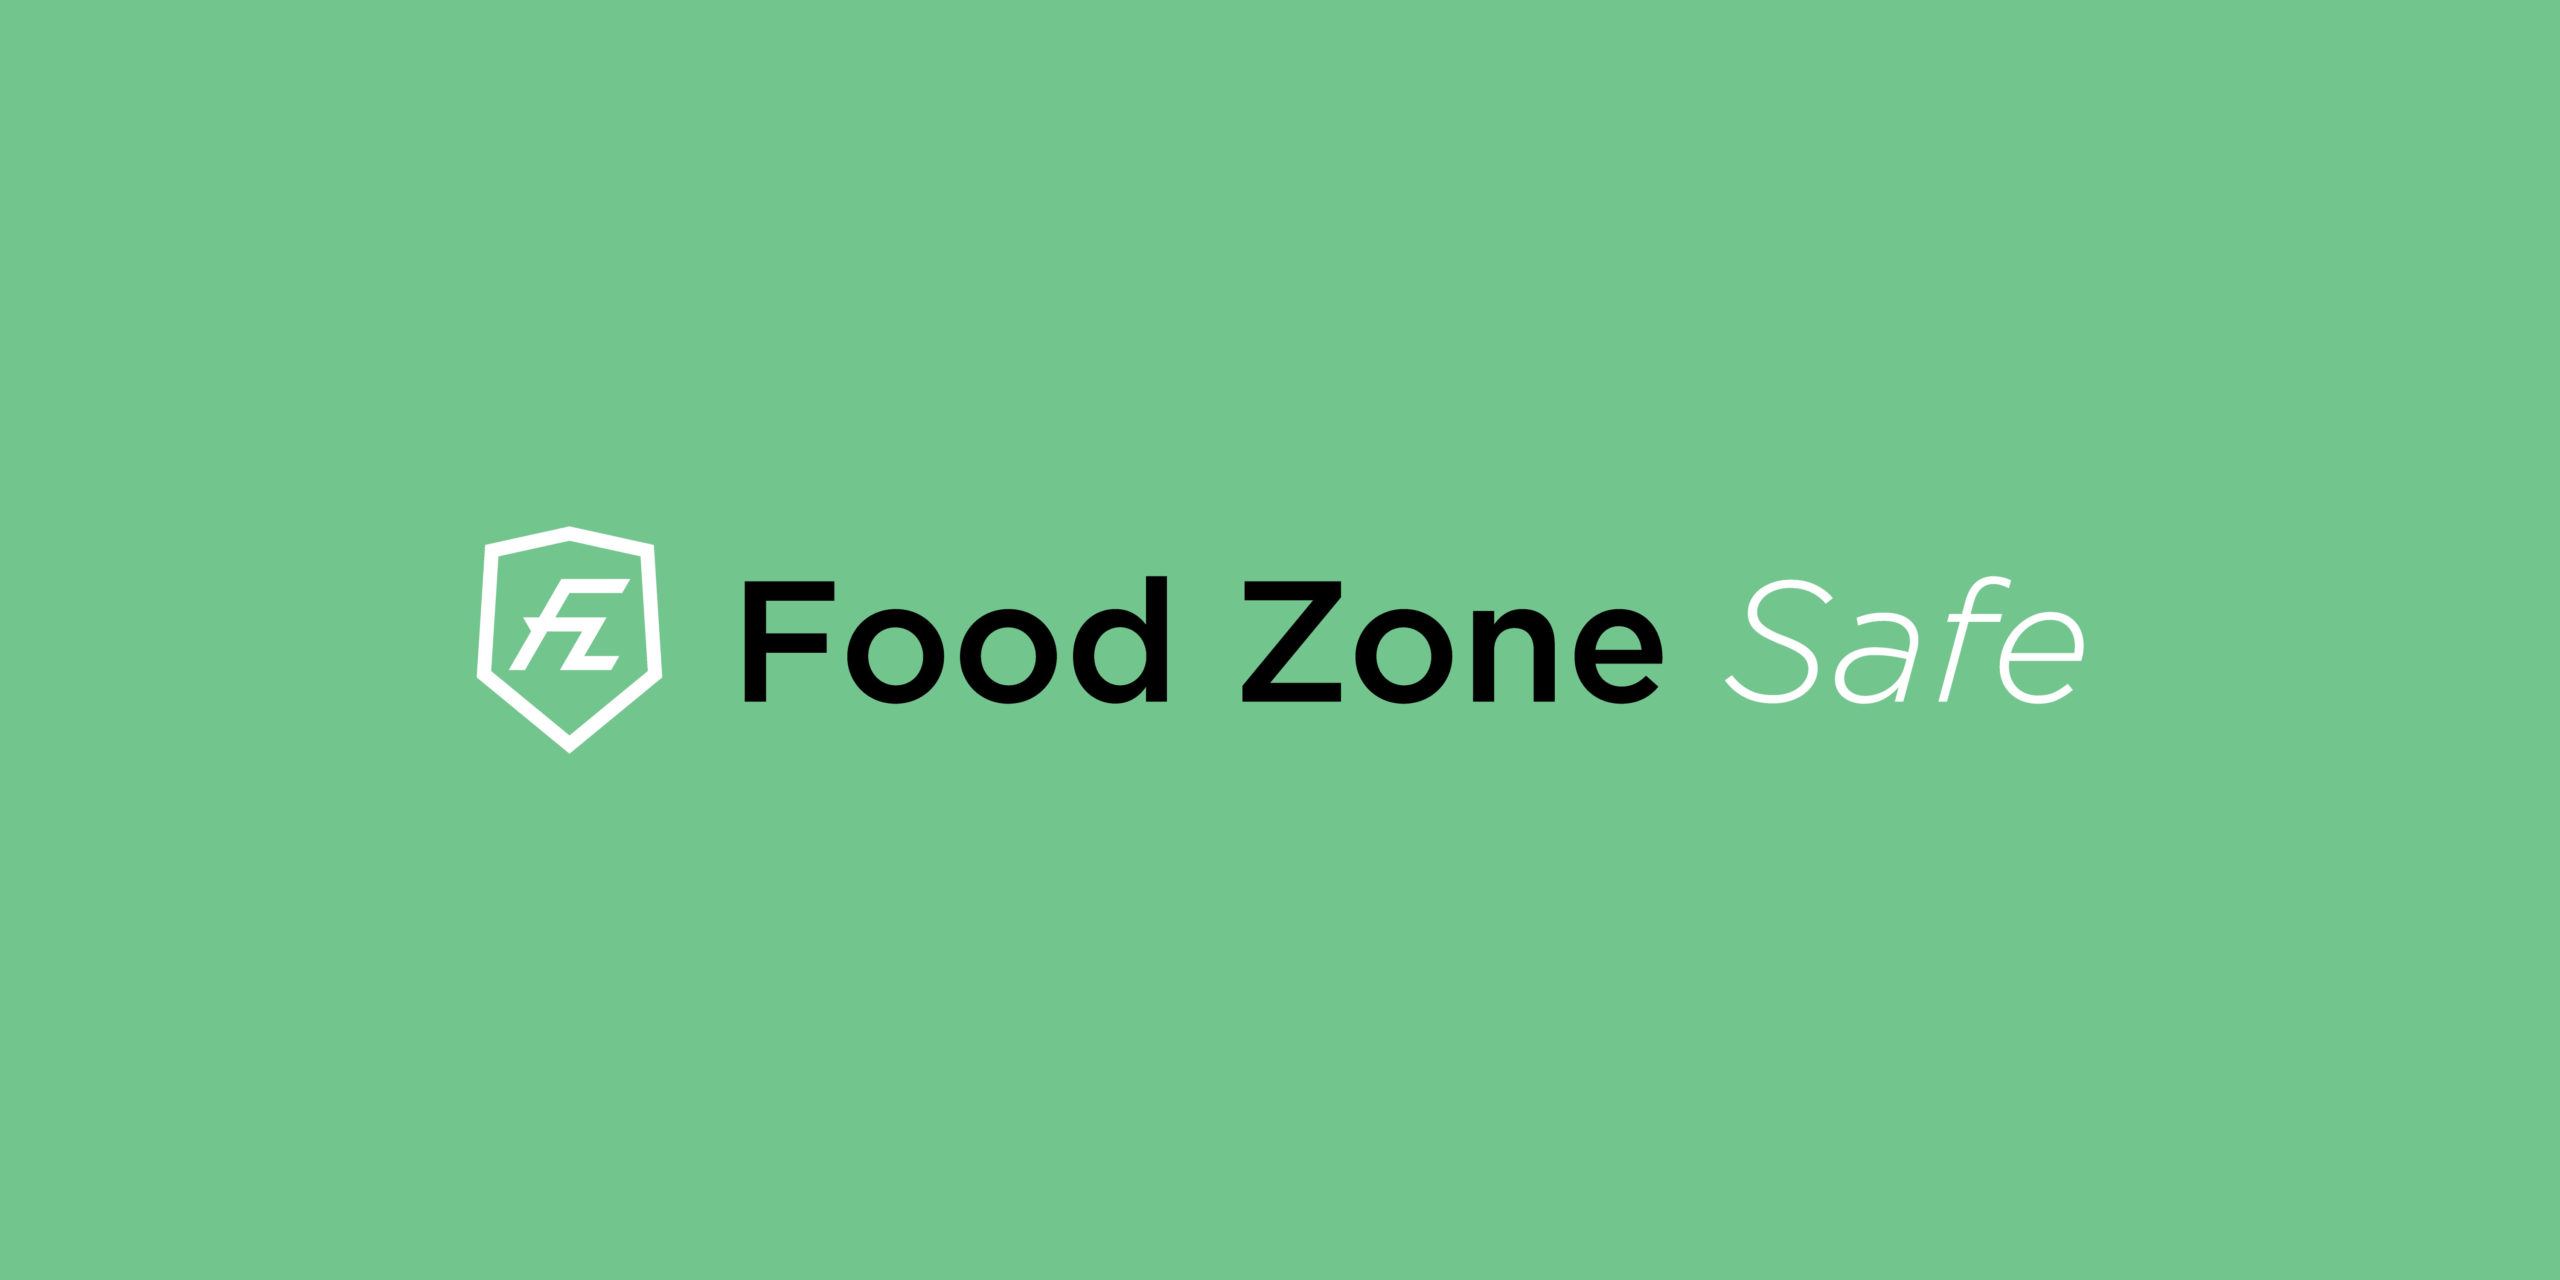 Food Zone Safe